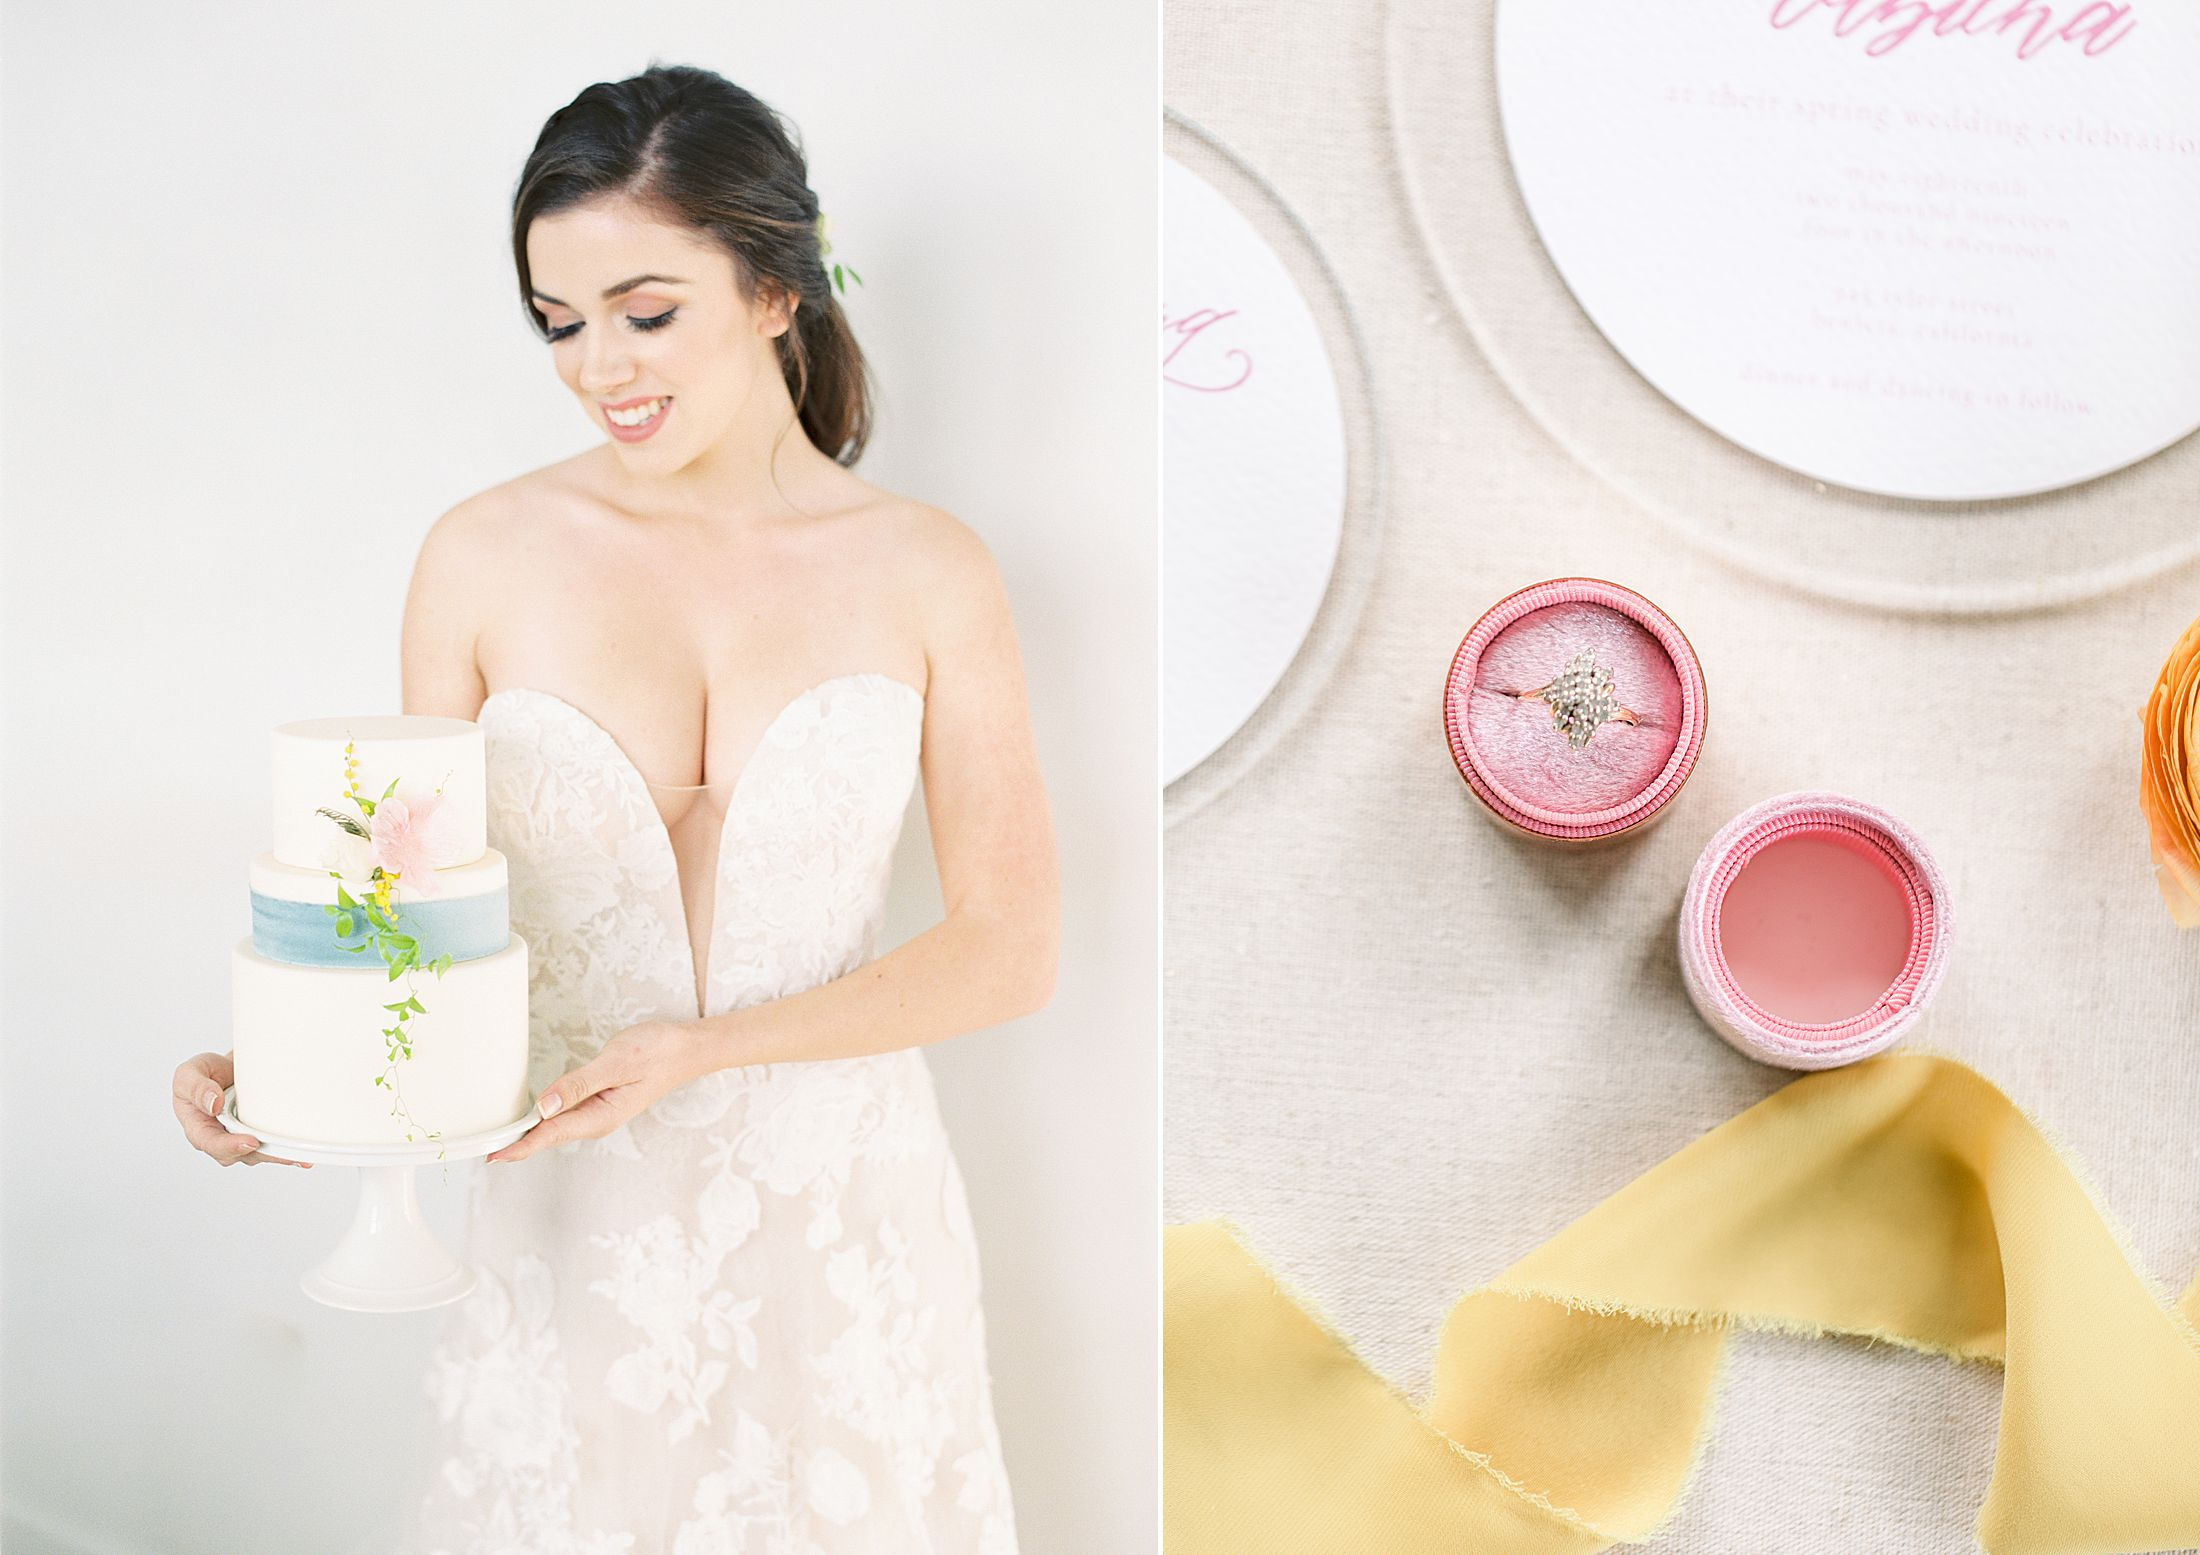 Bay Area Spring Wedding Inspiration - Ashley Baumgartner - Inspired By This - Party Crush Studio and Lens of Lenox Videography - Bay Area Wedding Photography_0063.jpg